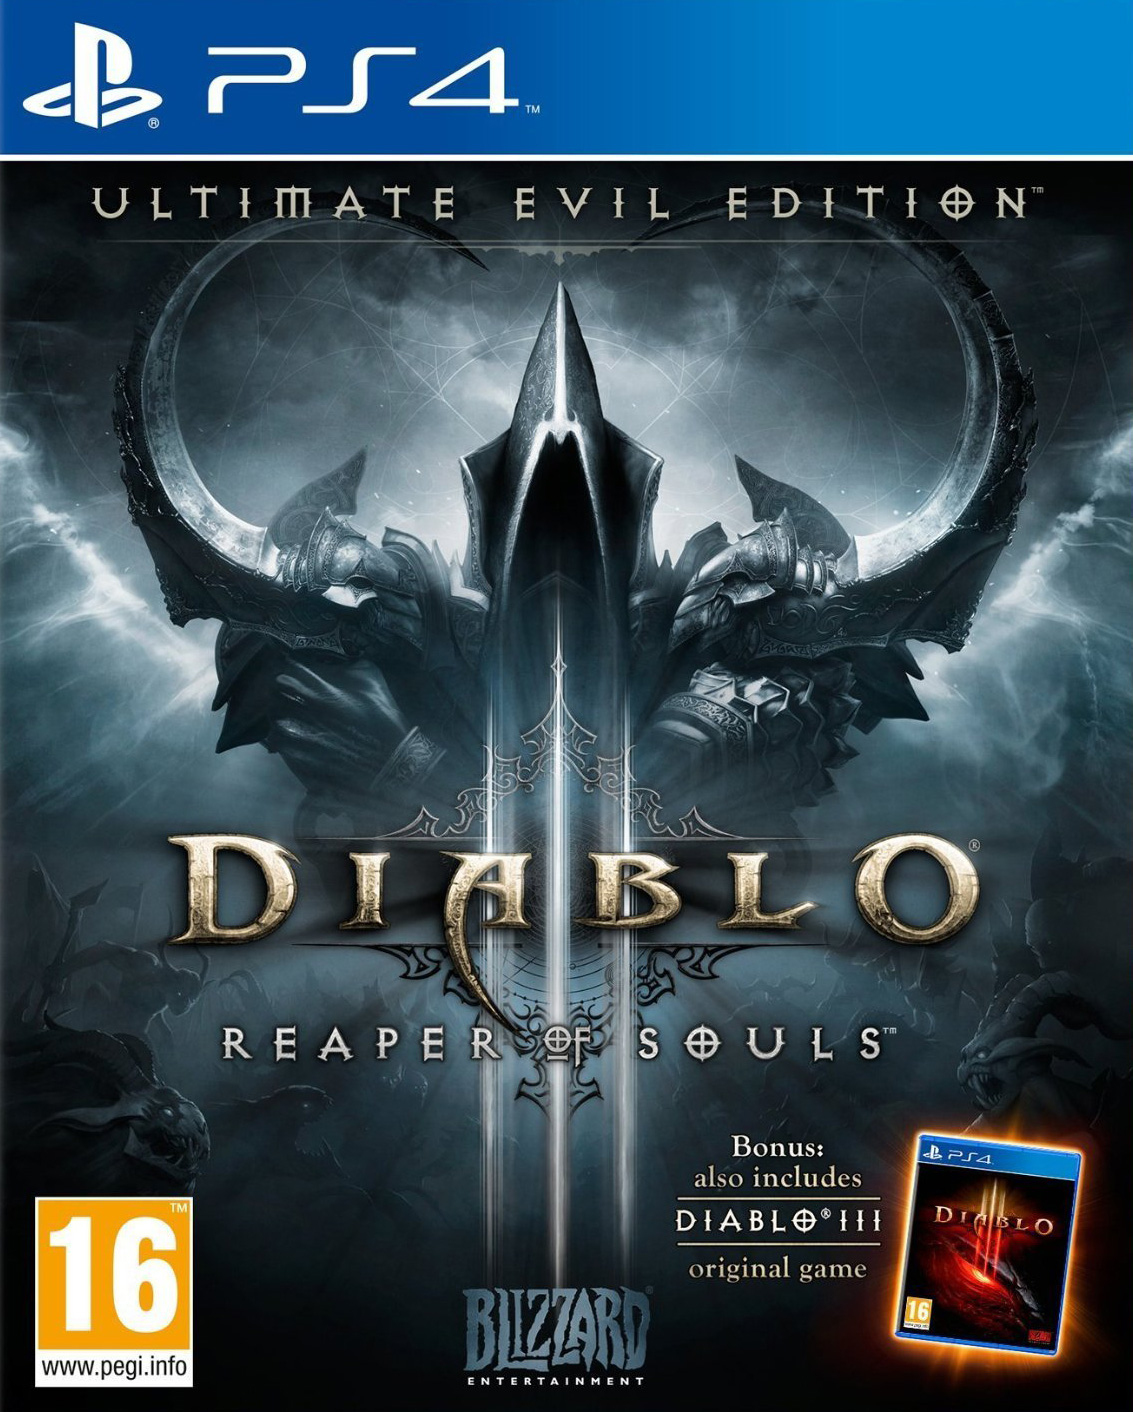 https://img5.downloadha.com/hosein/files/2018/06/Diablo-III-Reaper-of-Souls-Ultimate-Evil-Edition-ps4-cover-large.jpg